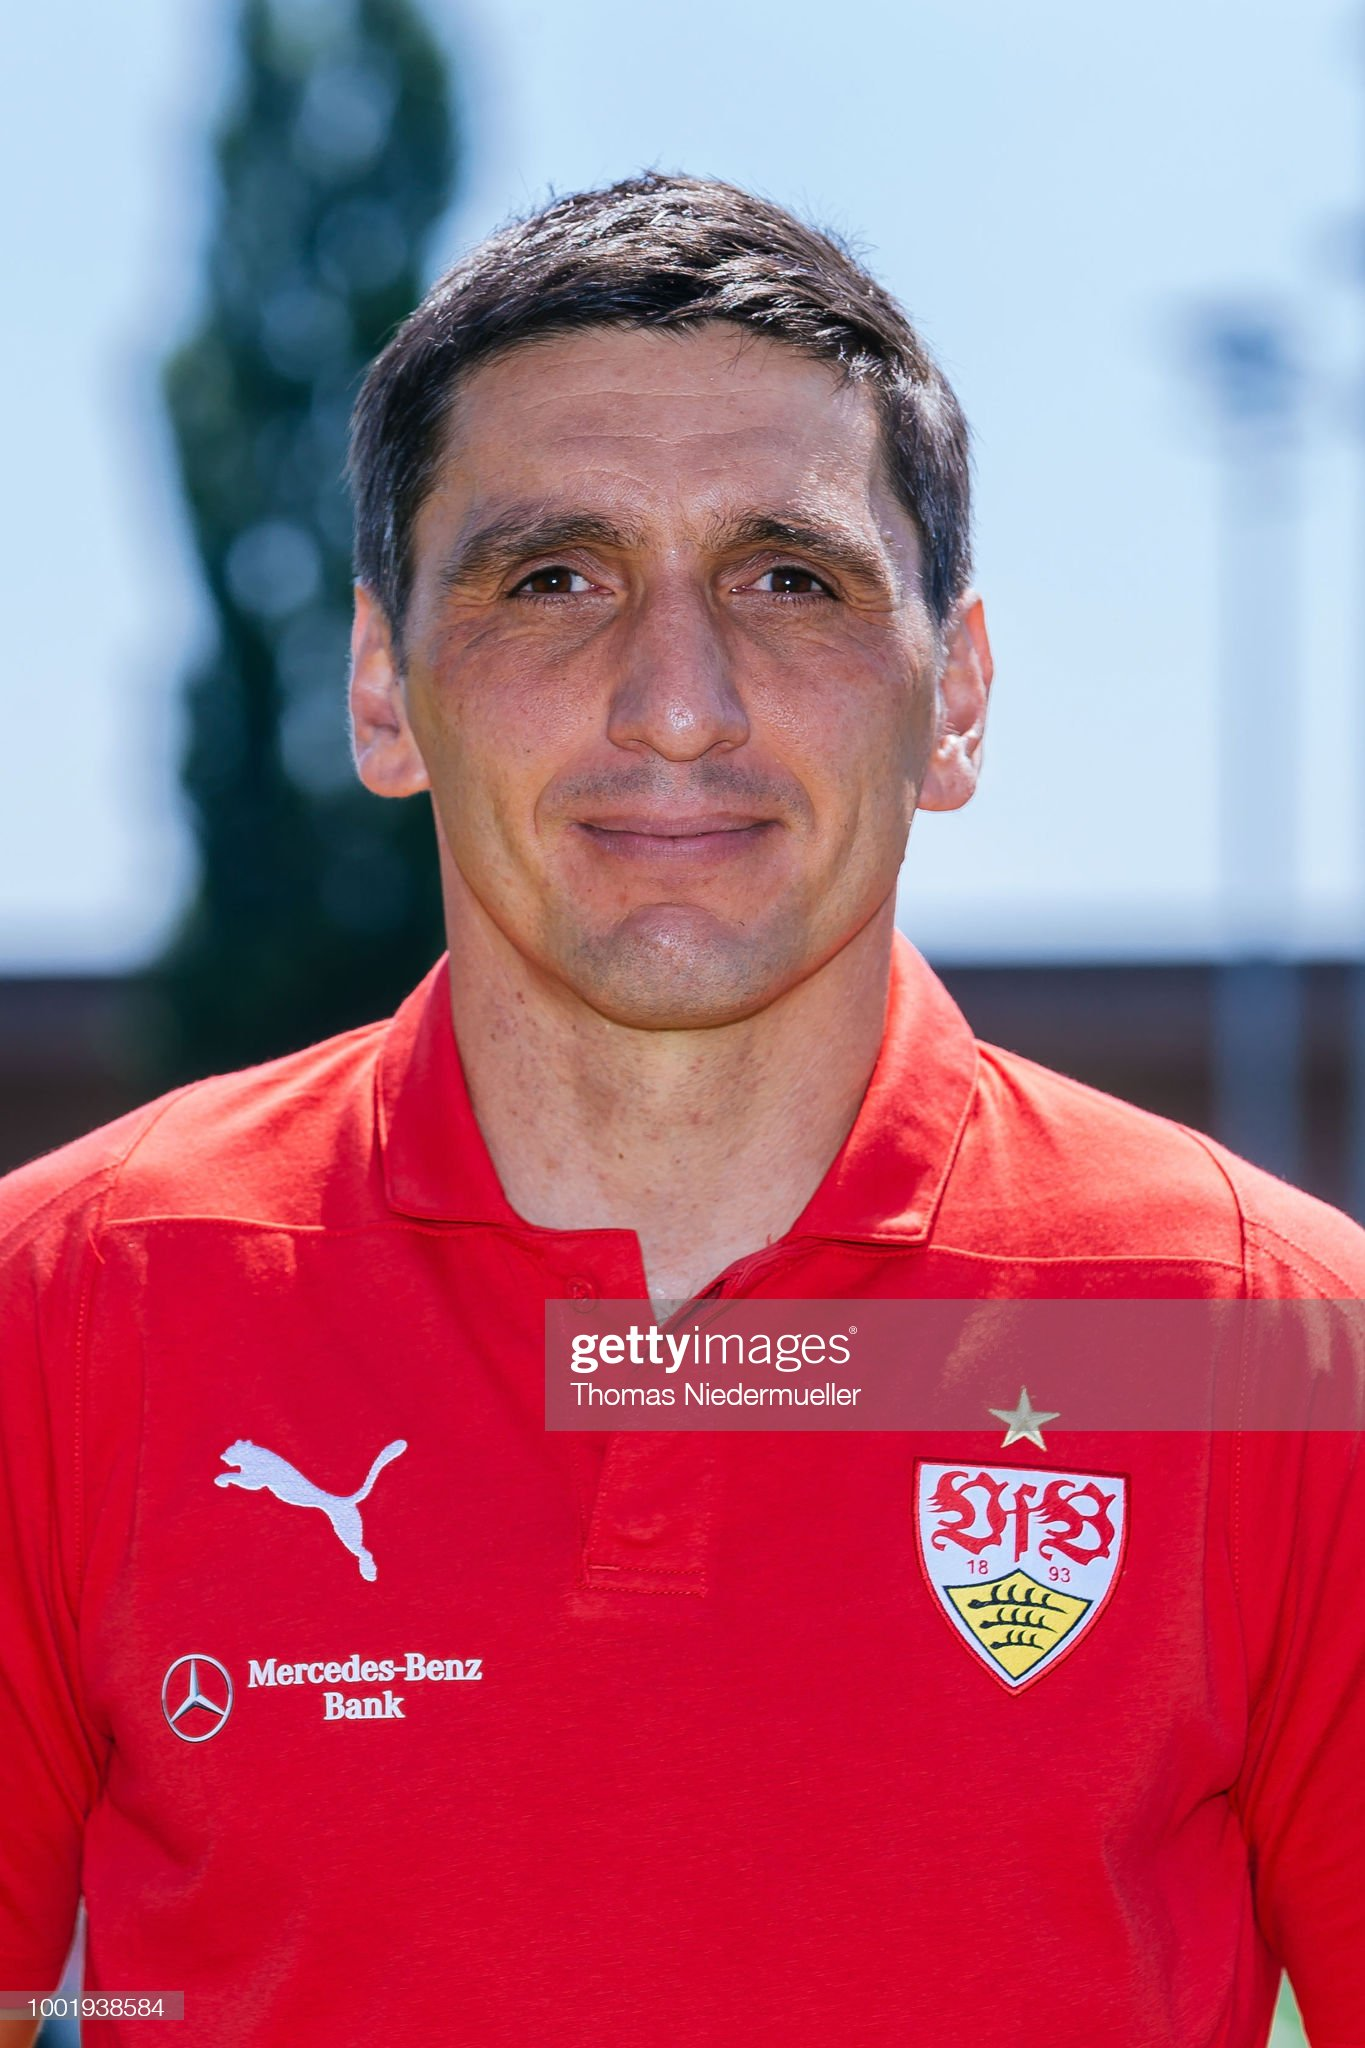 https://media.gettyimages.com/photos/head-coach-tayfun-korkut-of-vfb-stuttgart-poses-during-the-team-at-picture-id1001938584?s=2048x2048